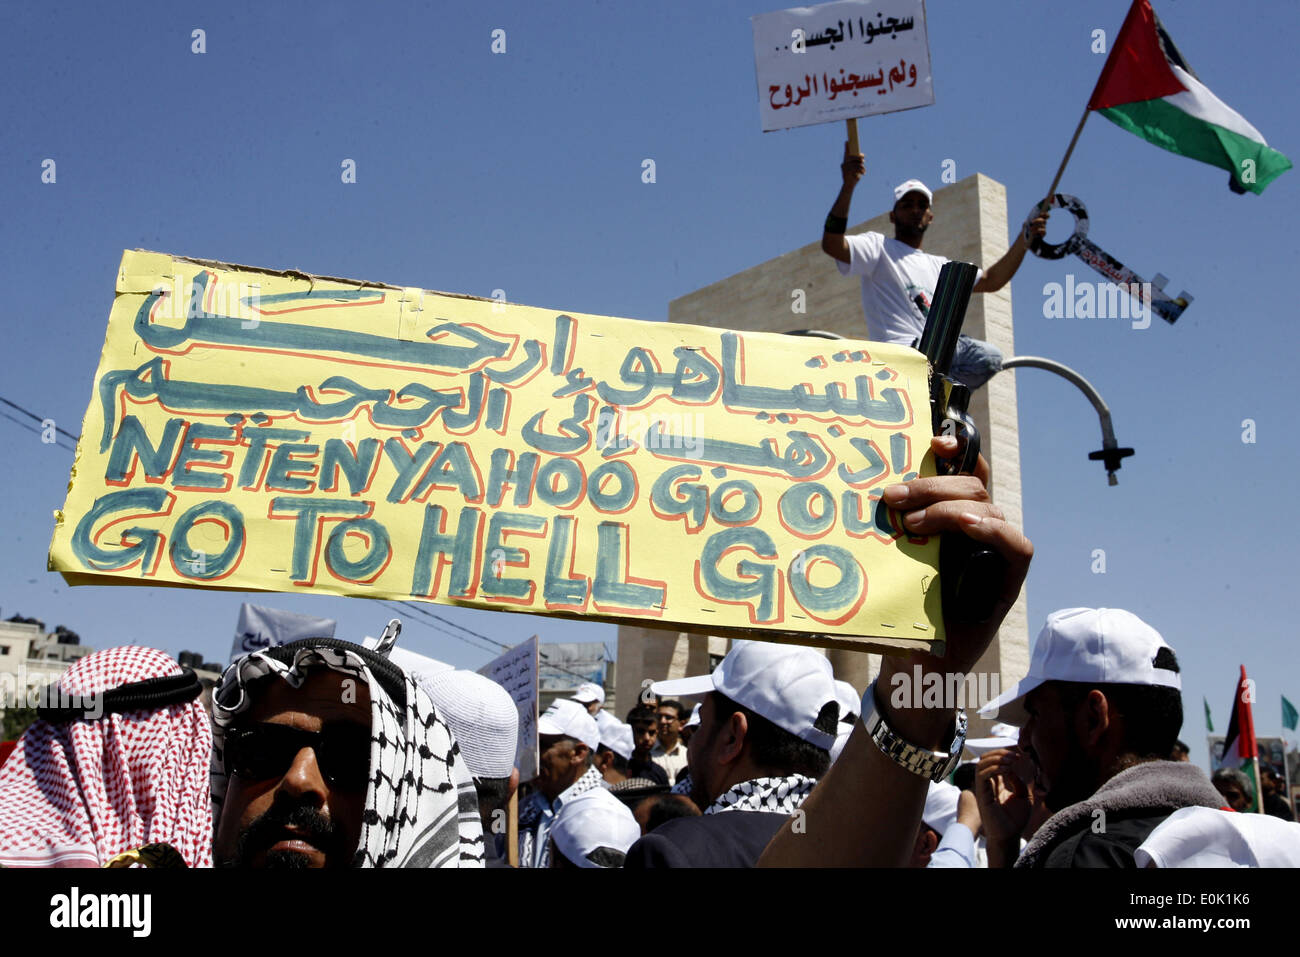 Gaza, Palestinian Territories. 15th May, 2014. A Palestinians take part in a rally ahead of the 66th anniversary Stock Photo